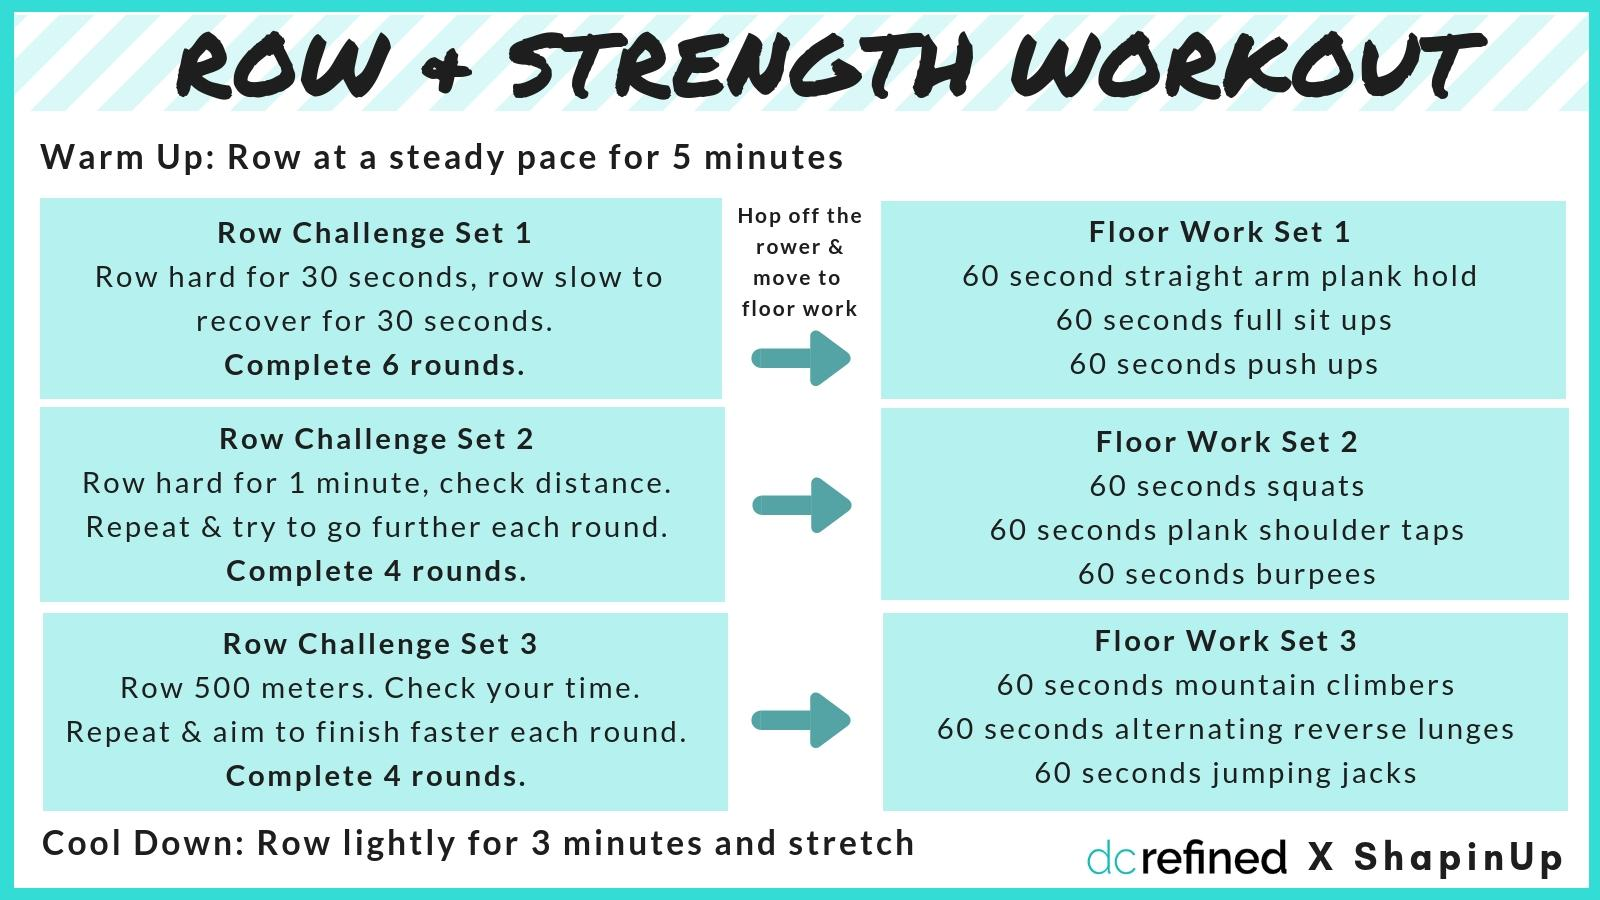 A full body workout focused around the rower. (Graphic: Amanda Shapin)<p><br></p>